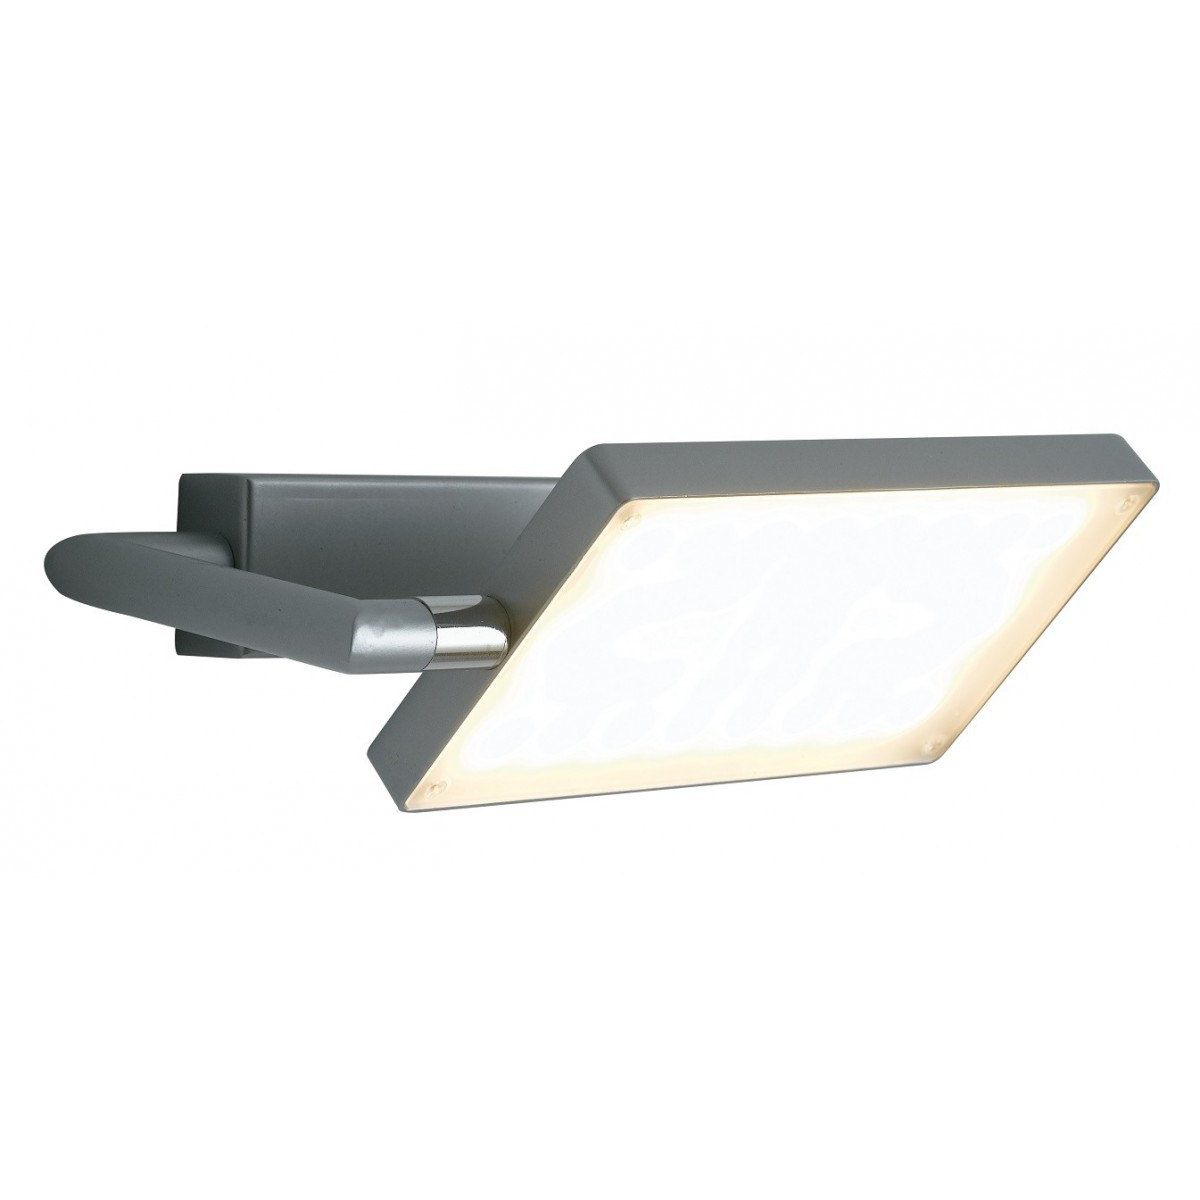 LED-BOOK-AP-GR - Applique a Libro Orientabile Giriga Alluminio Led 17 watt Luce Calda